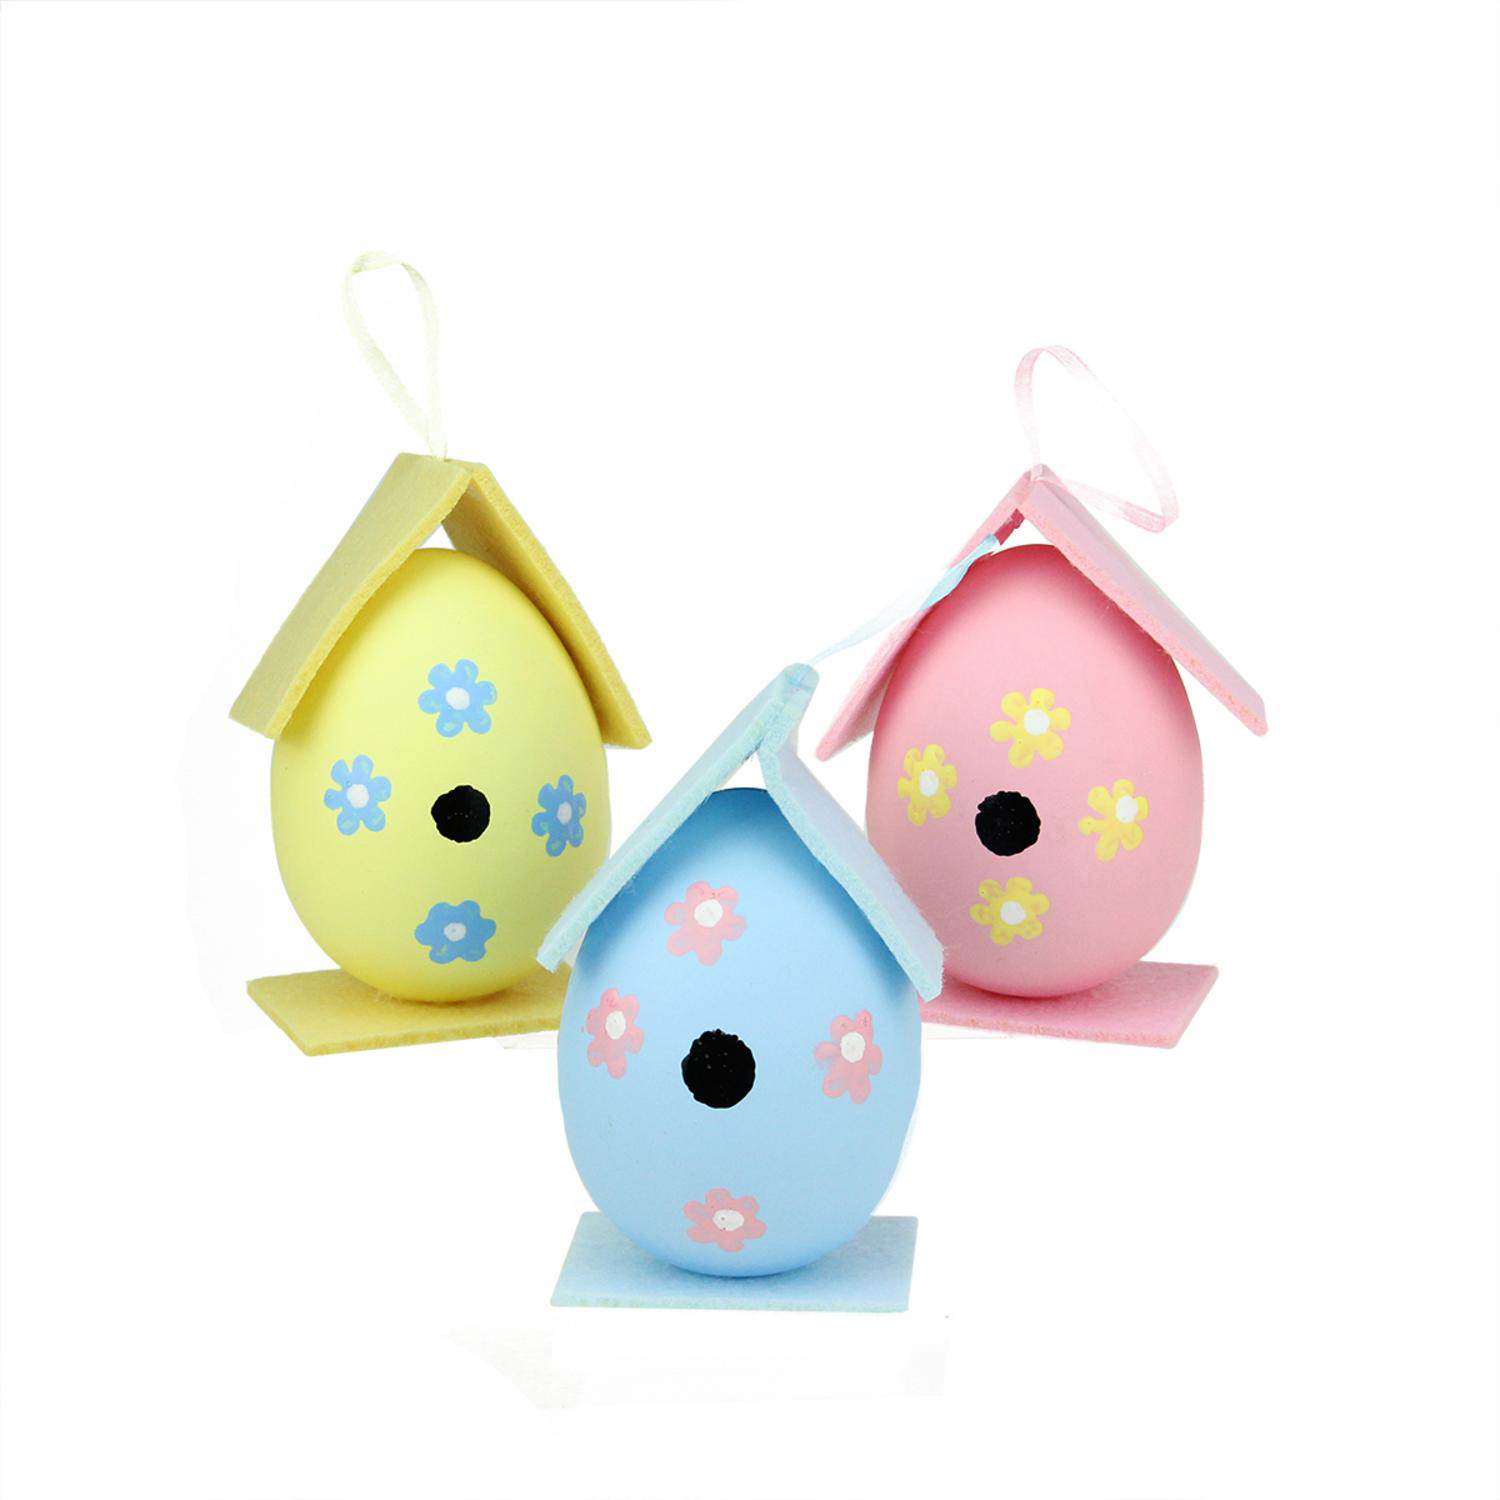 """4.25"""" Pink, Yellow & Blue Painted Easter Egg Birdhouse Ornaments Set of 3"""